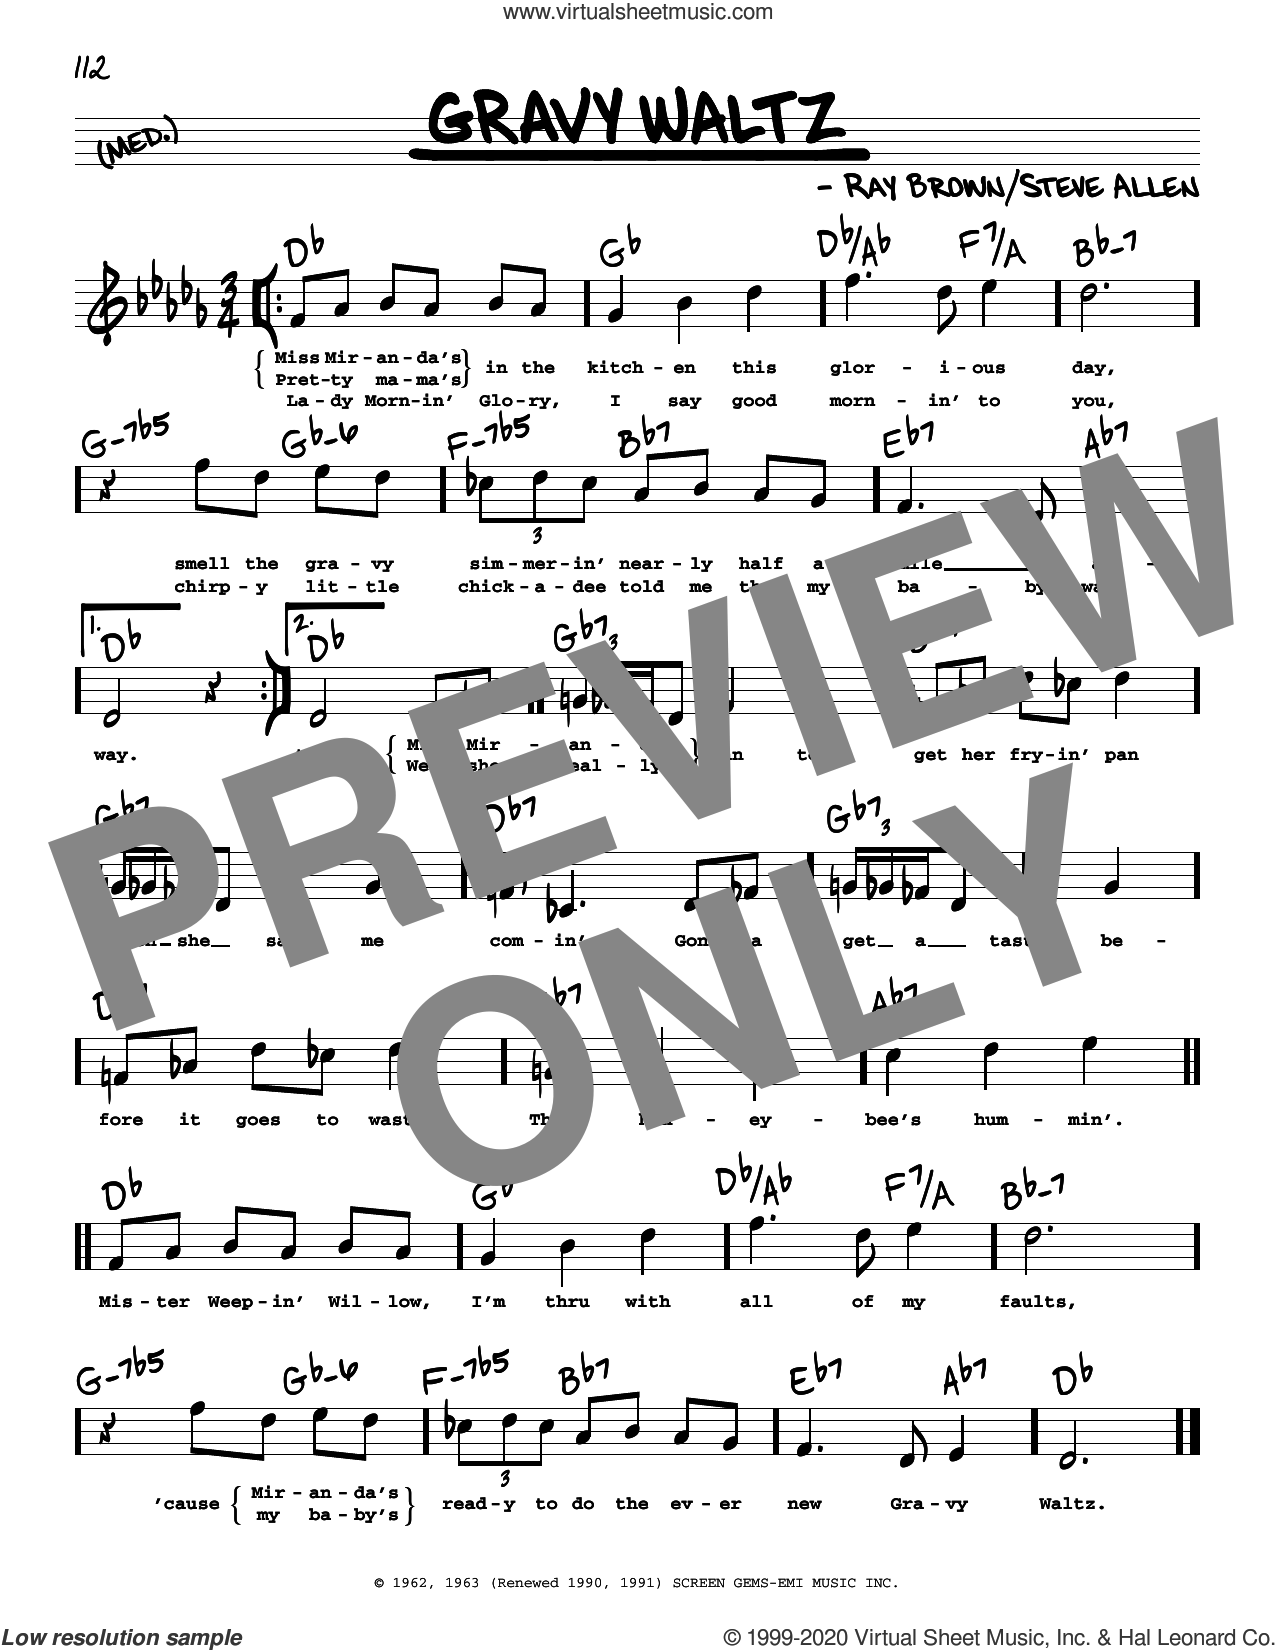 Gravy Waltz (High Voice) sheet music for voice and other instruments (high voice) by Ray Brown and Steve Allen, intermediate skill level